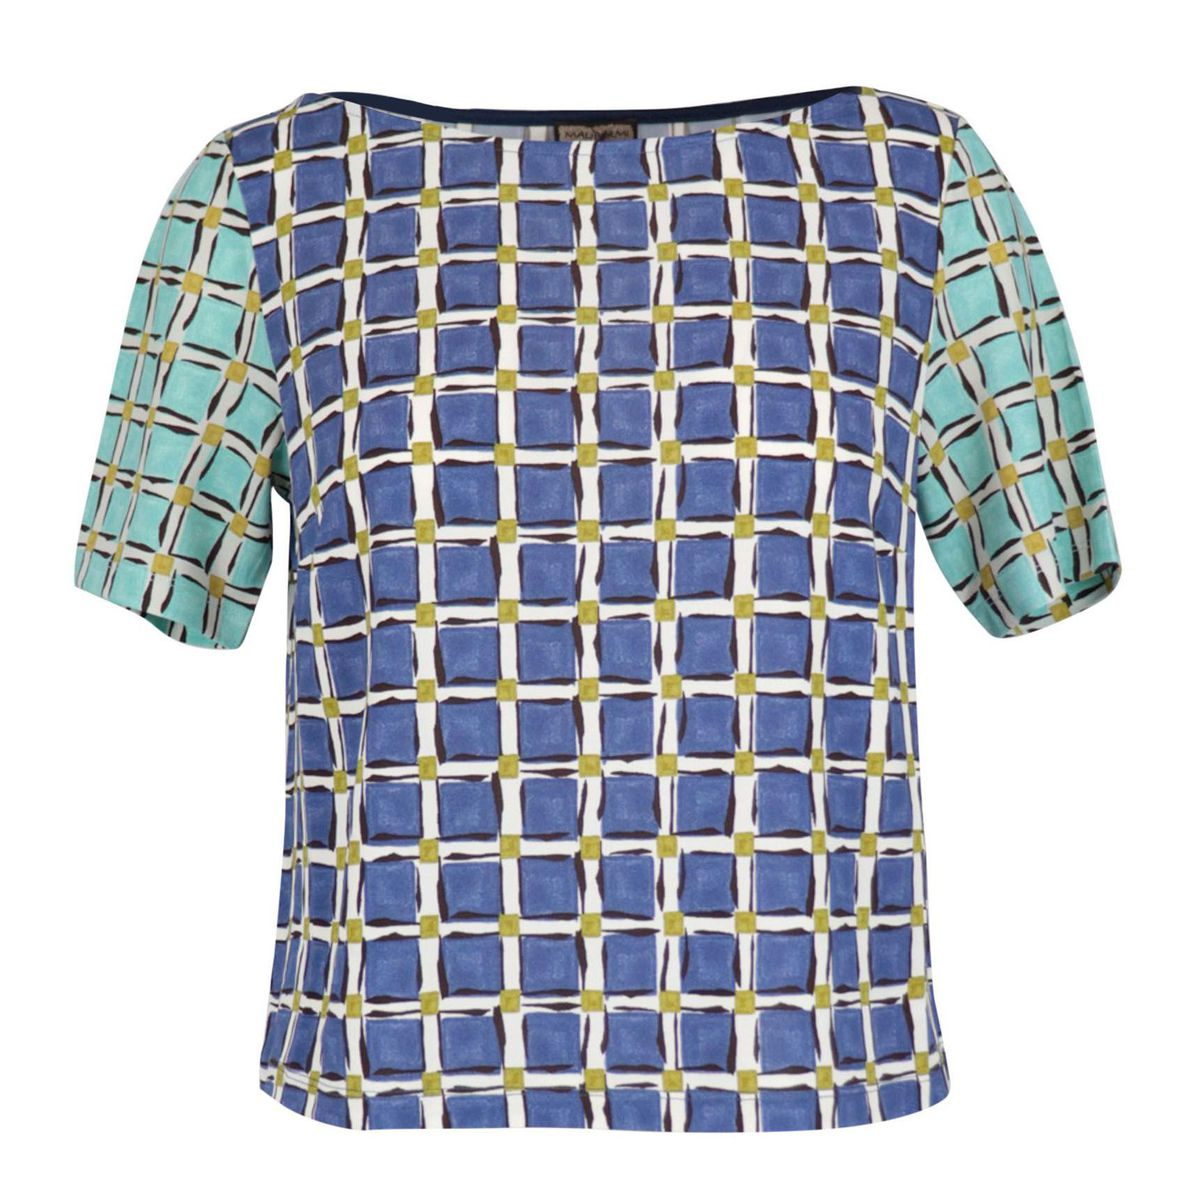 Short-sleeved T-shirt in checked pattern viscose Blue / ivory Maliparmi